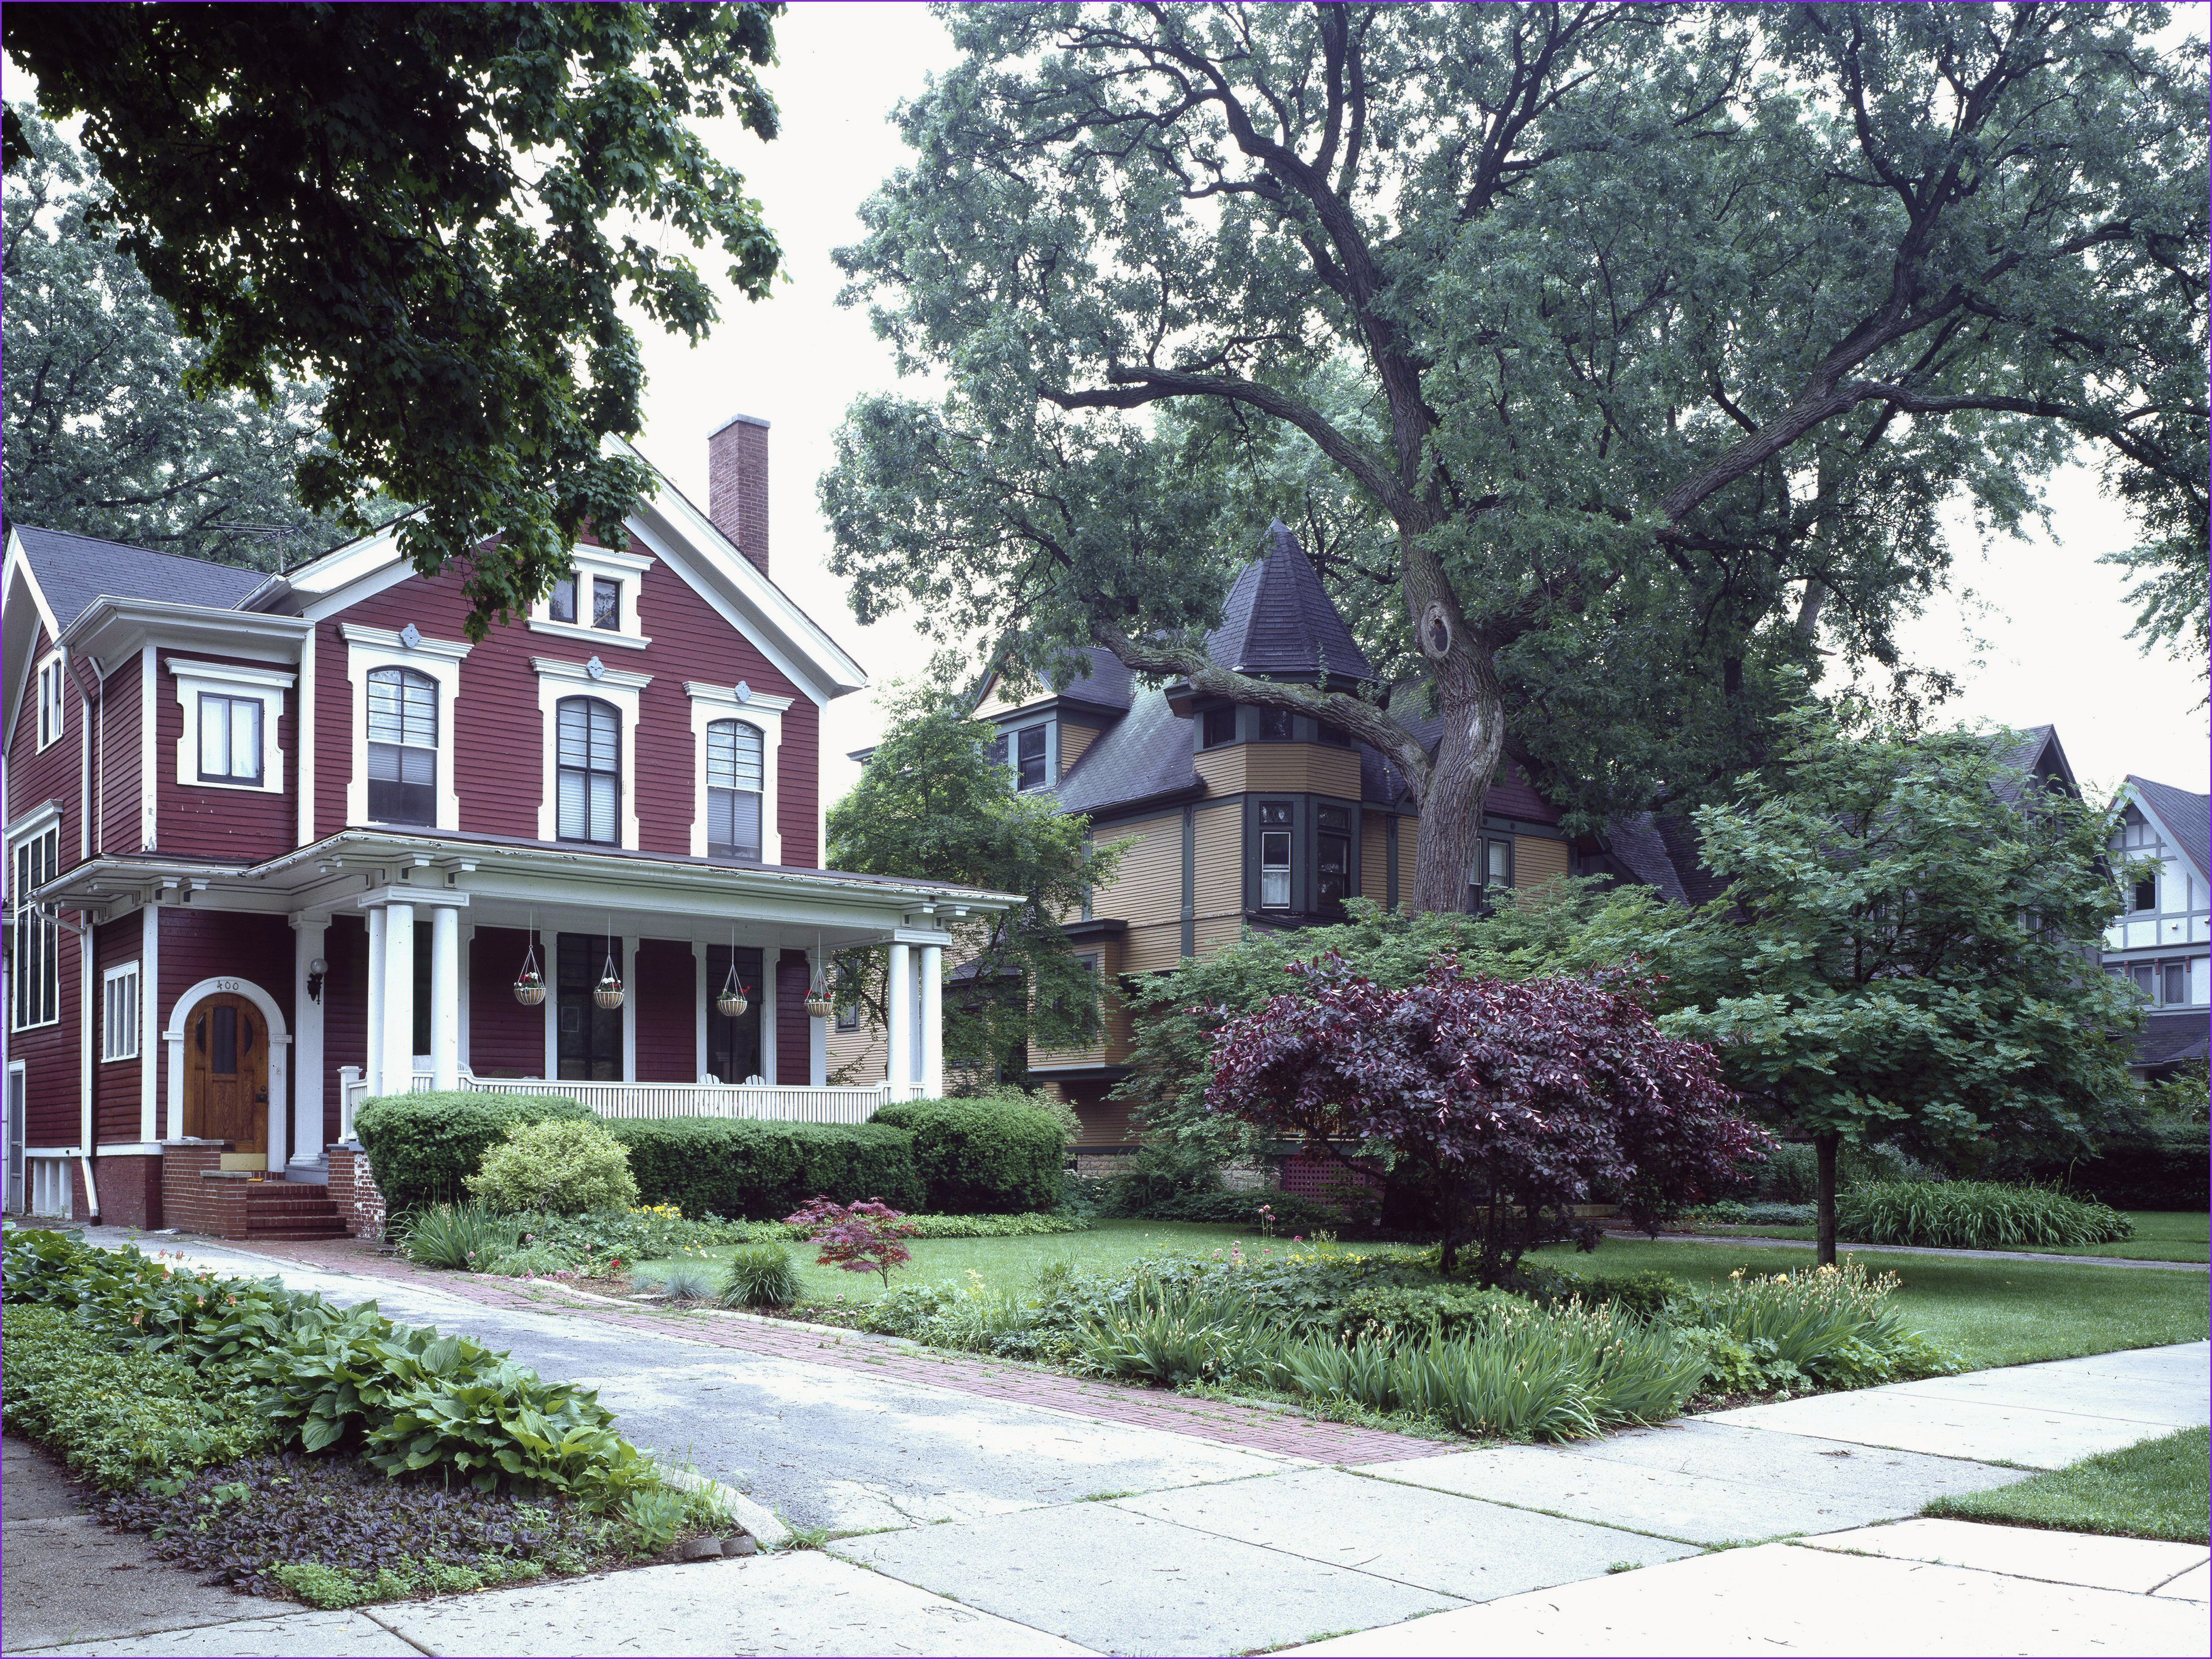 Awesome Queen Anne Victorian House Plan Colonial House Plans House Plan Gallery Cottage House Plans